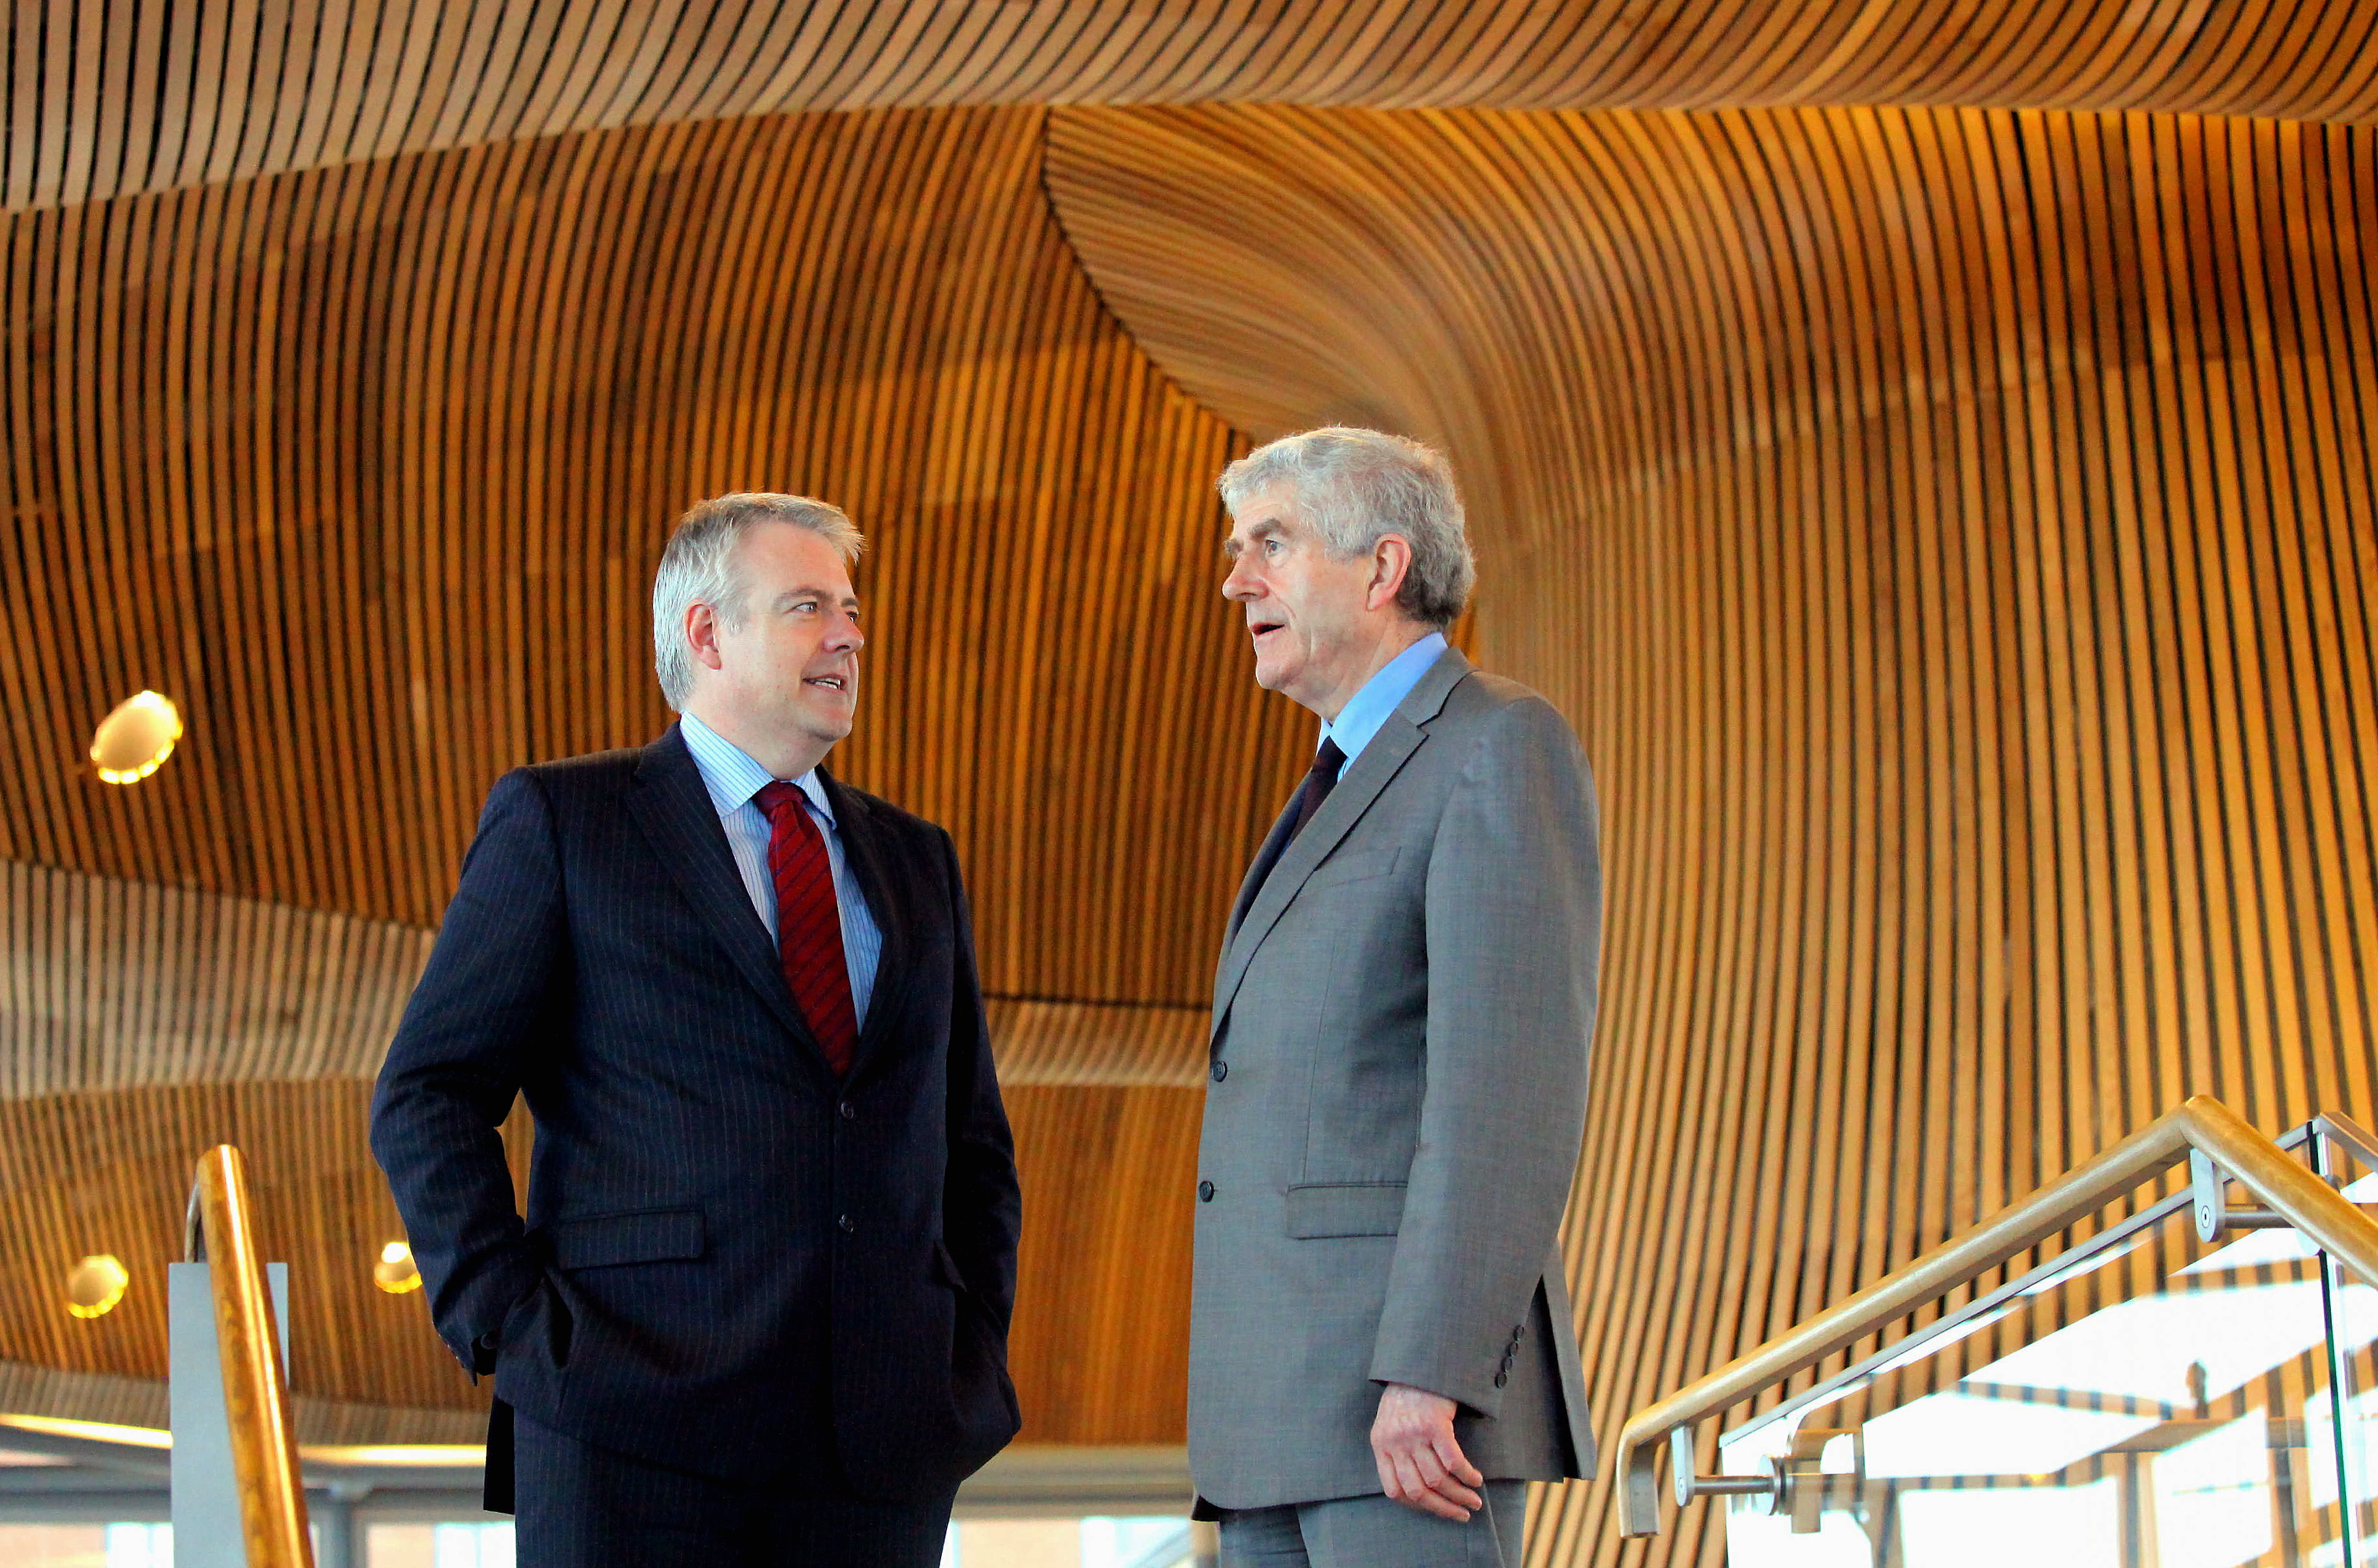 Rhodri Morgan (R) with successor Carwyn Jones (L) in the Senedd Cardiff Bay. Last day in office for First Minister for Wales Rhodri Morgan at the Welsh Assembly Government where he took part in First Minister Questions at the Chambers in the Senedd at Cardiff Bay for the last time, to be succeeded by Carwyn Jones Assembly Member for Bridgend.